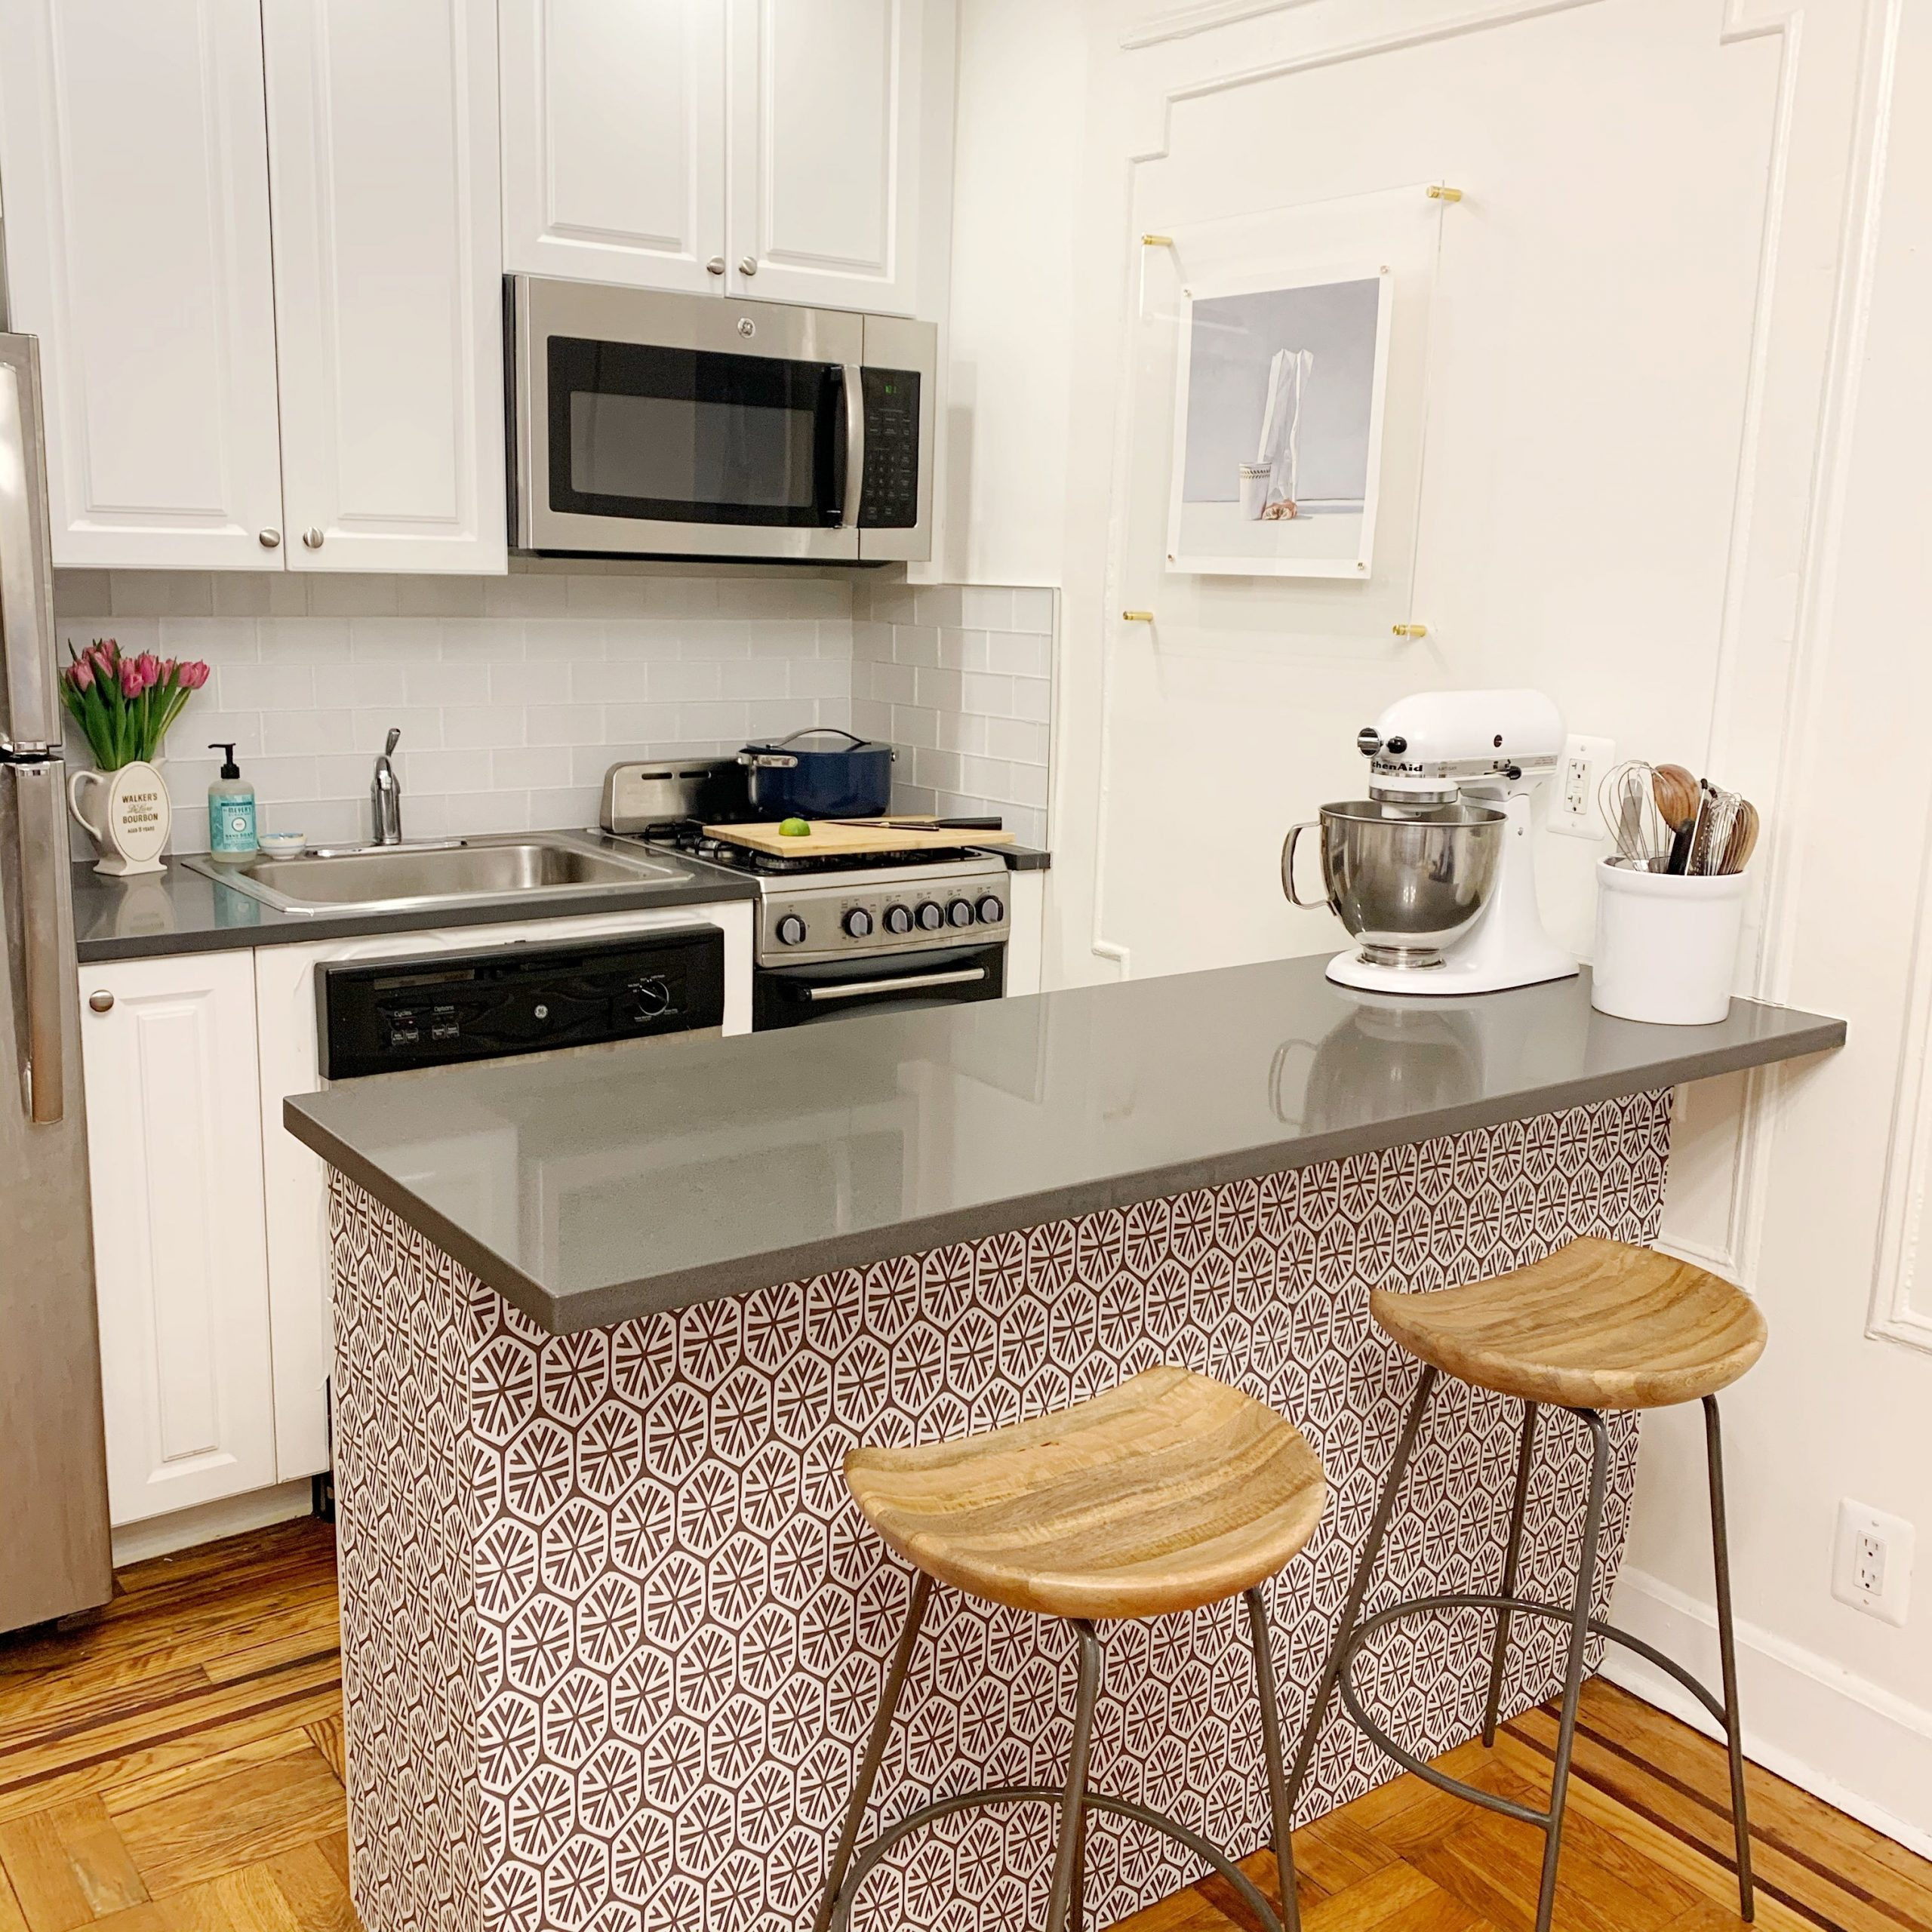 Is the kitchen too small? All the more reason to pick the right kitchen cabinets! Cabinet Project - 1